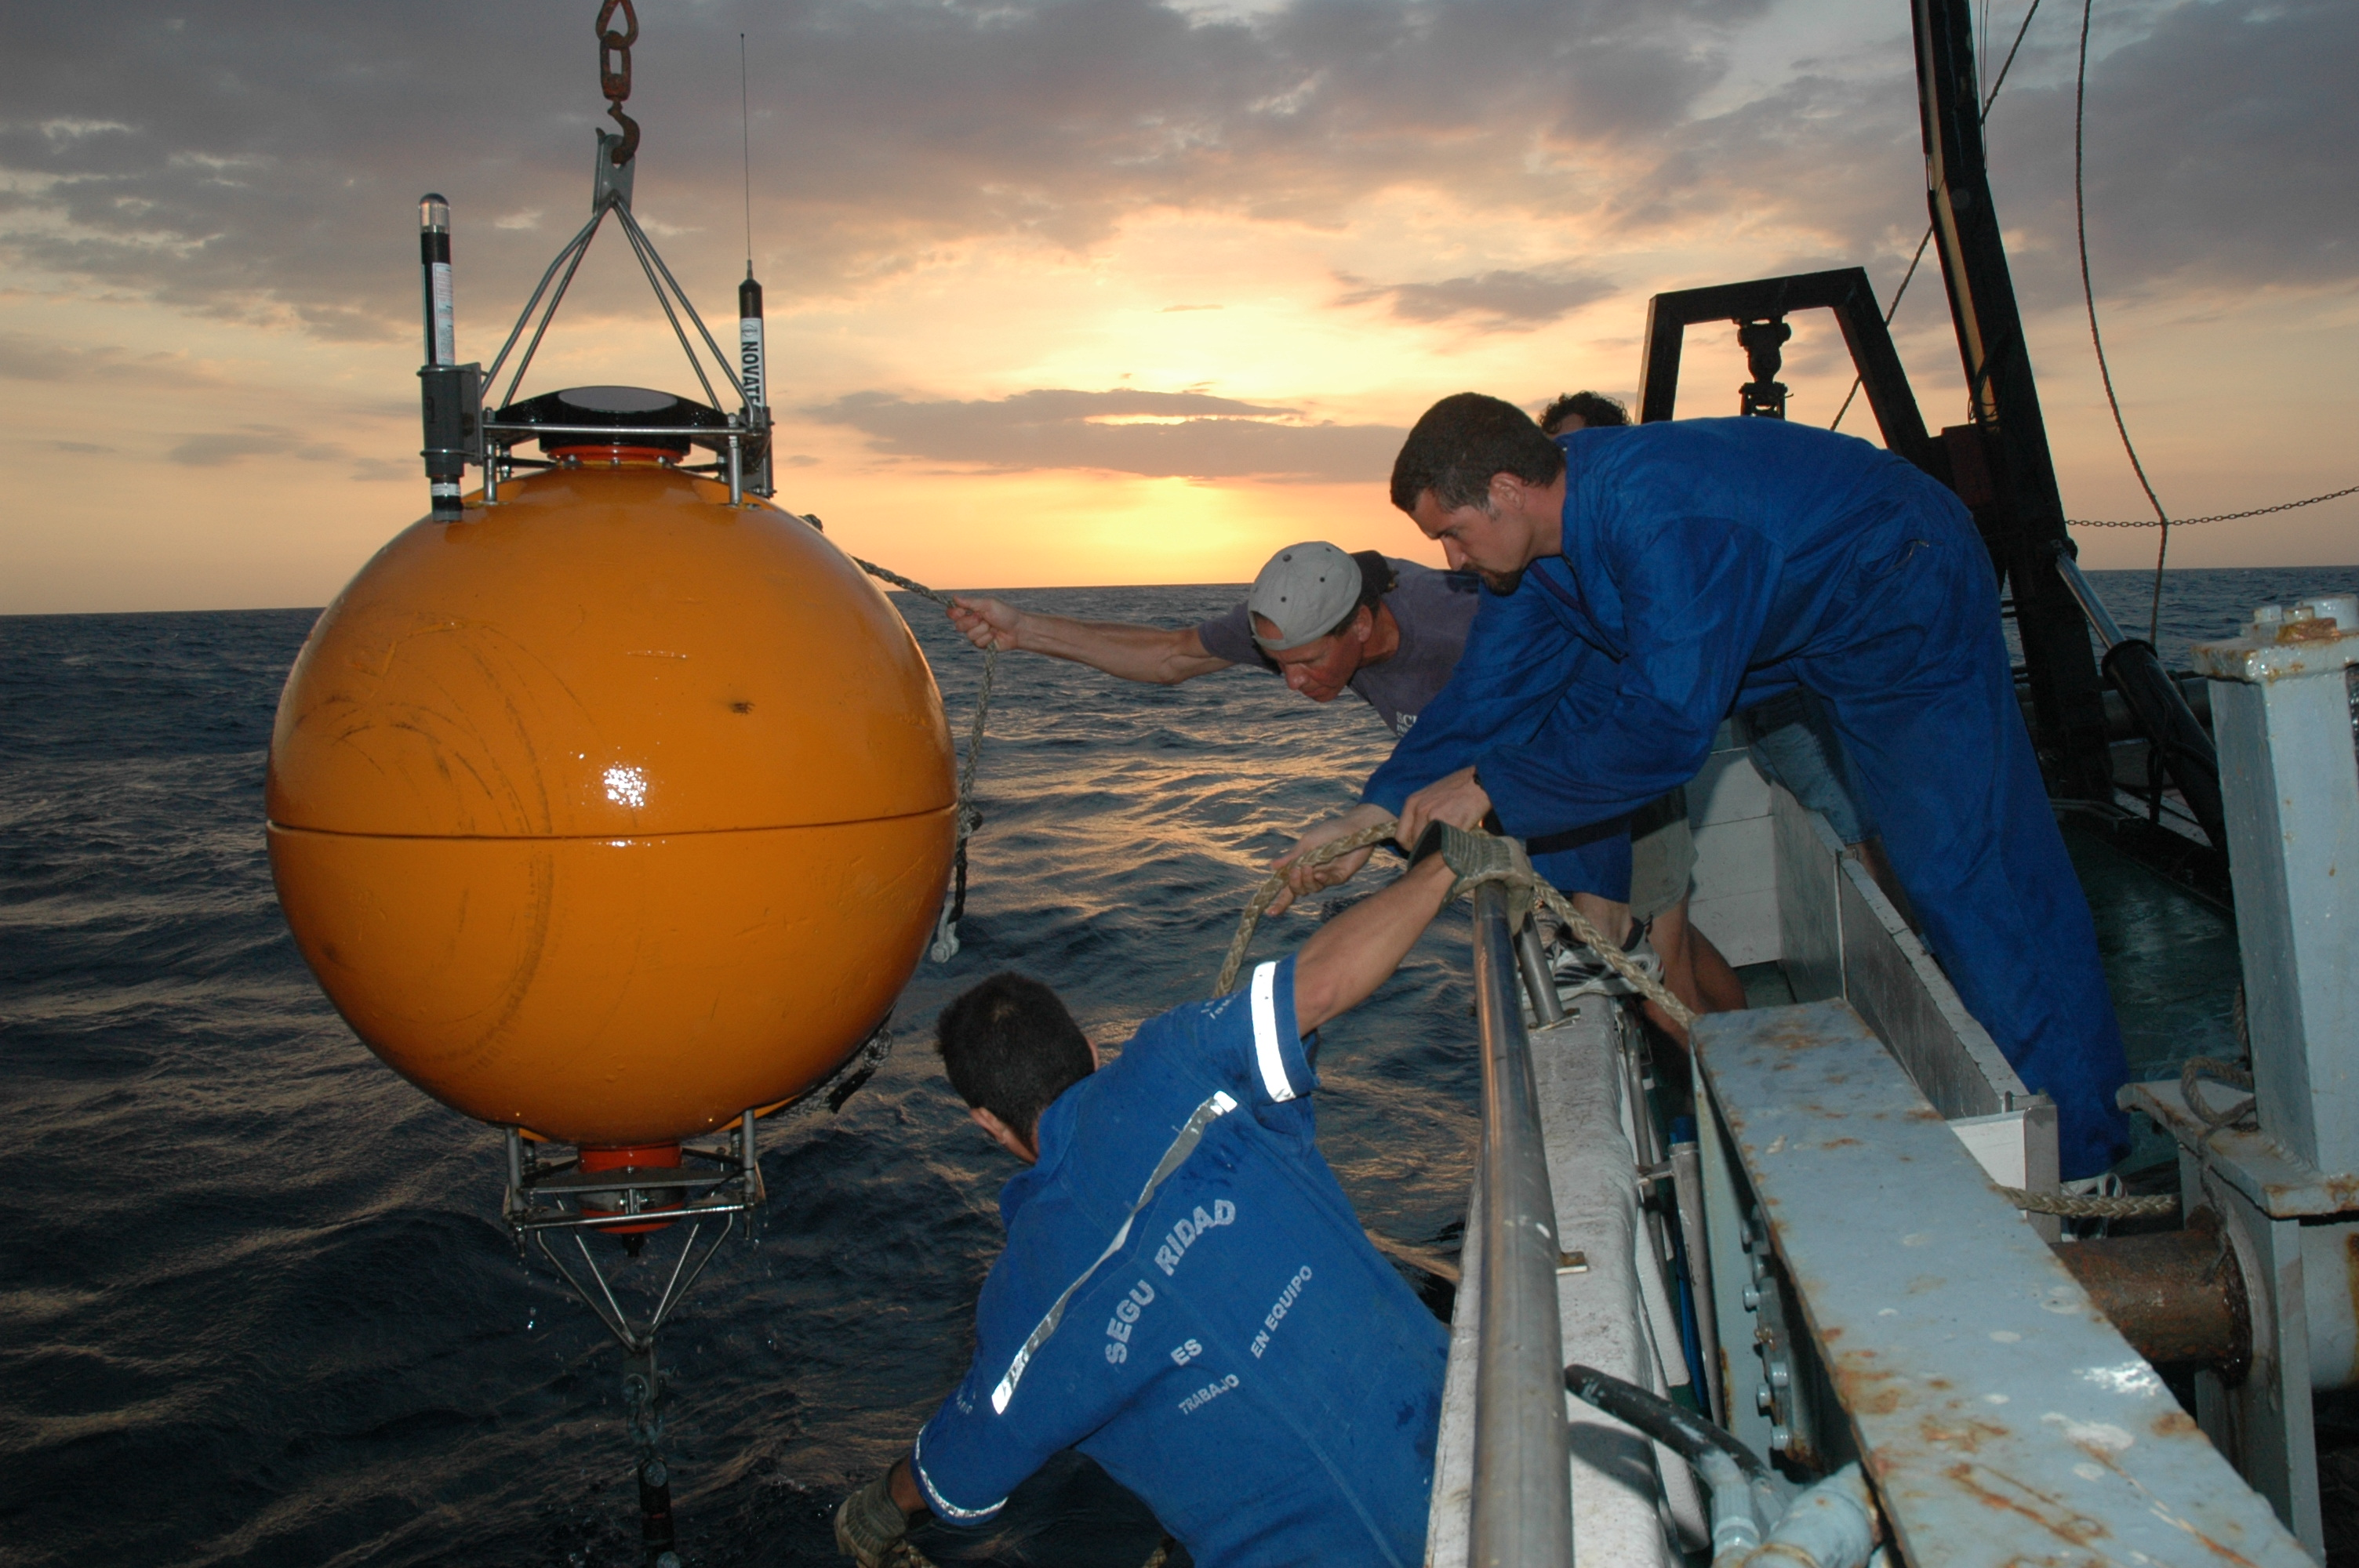 A CARIACO team recovers the buoy that housed the Acoustic Doppler Current Profiler (ADCP). Data from the ADCP revealed a daily migration of fish into and out of the anoxic waters in the morning and evening.